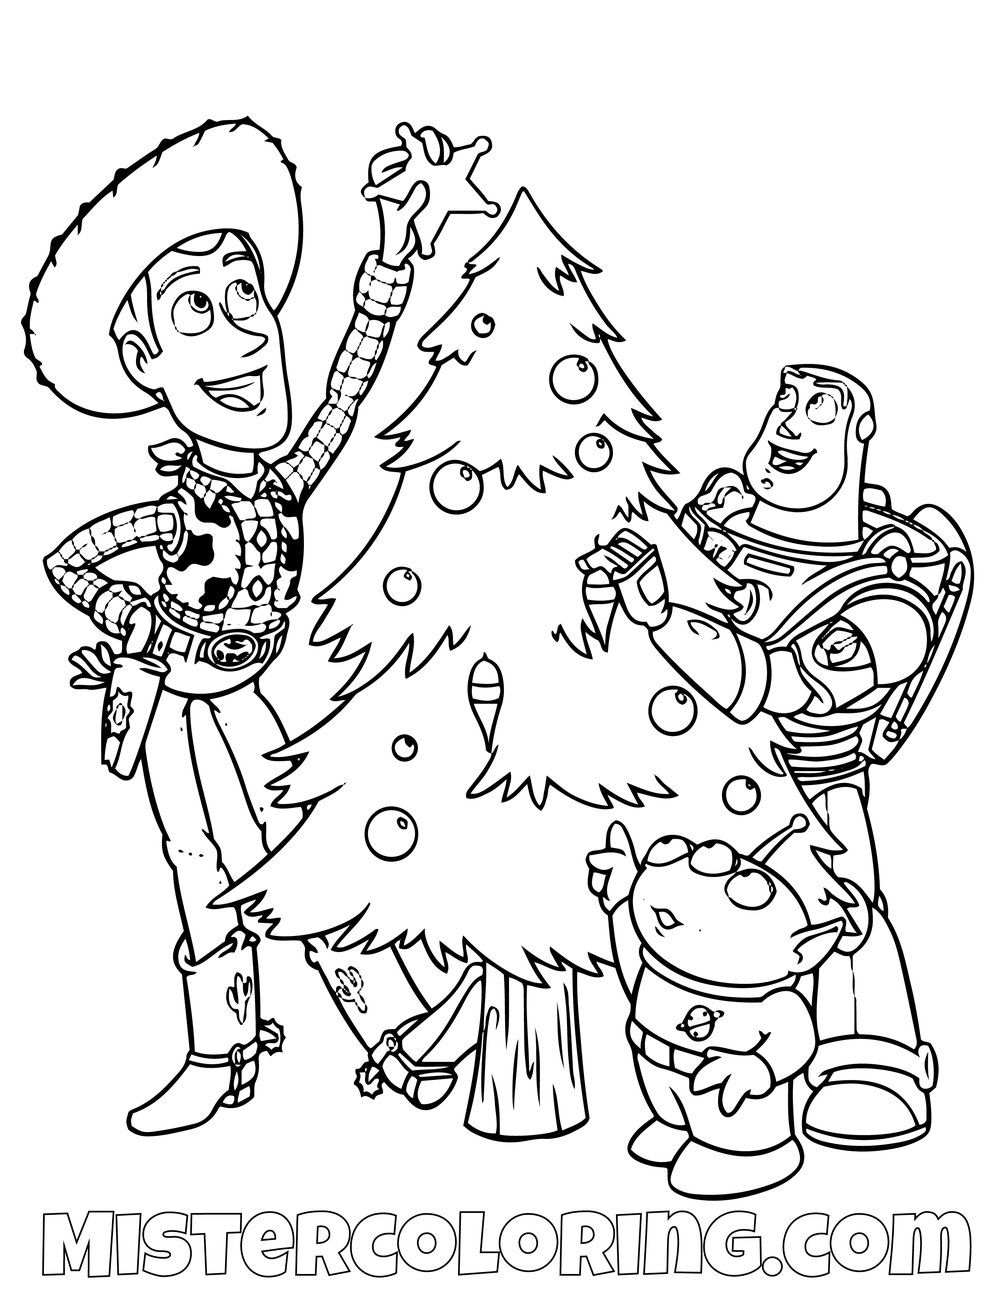 Sheriff Woody Alien And Buzz Lightyear With Christmas Tree Toy